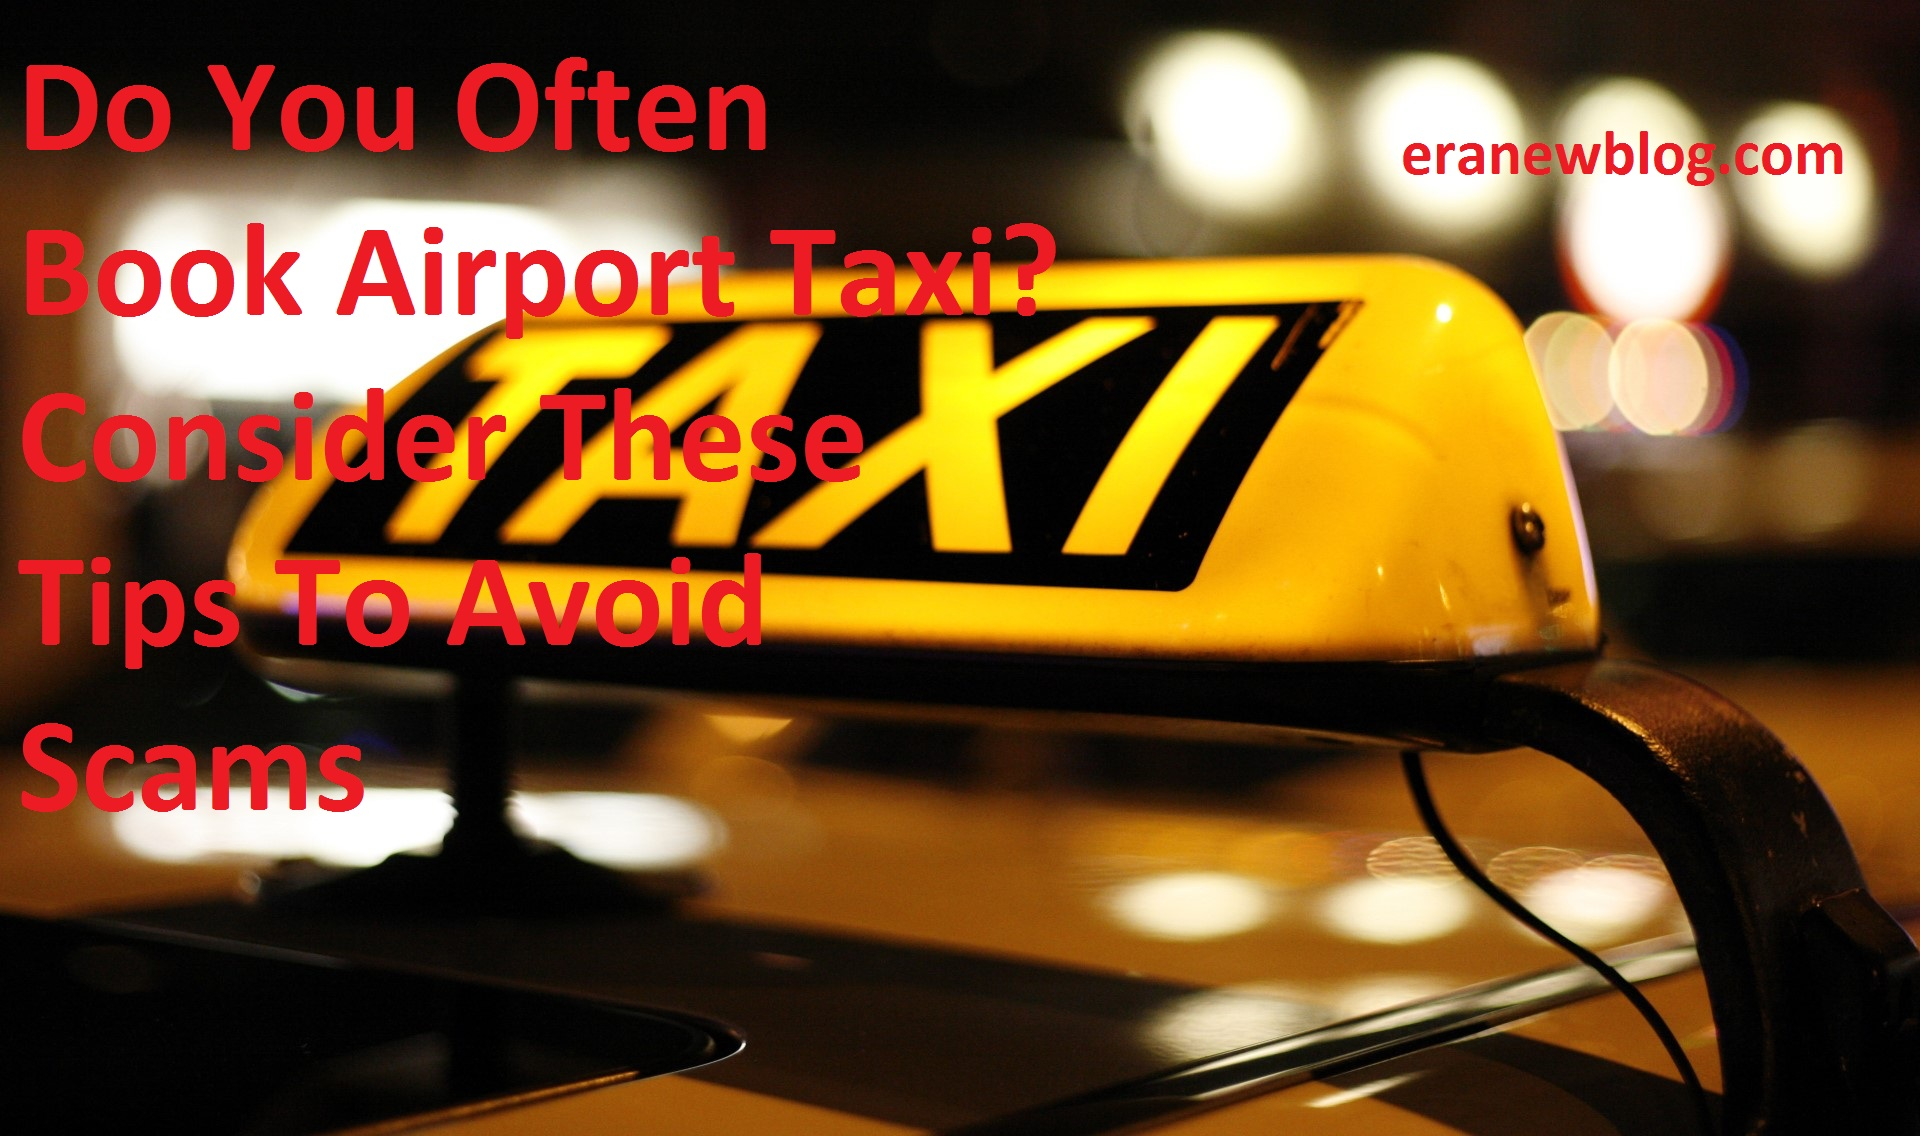 Do You Often Book Airport Taxi? Consider These Tips To Avoid Scams